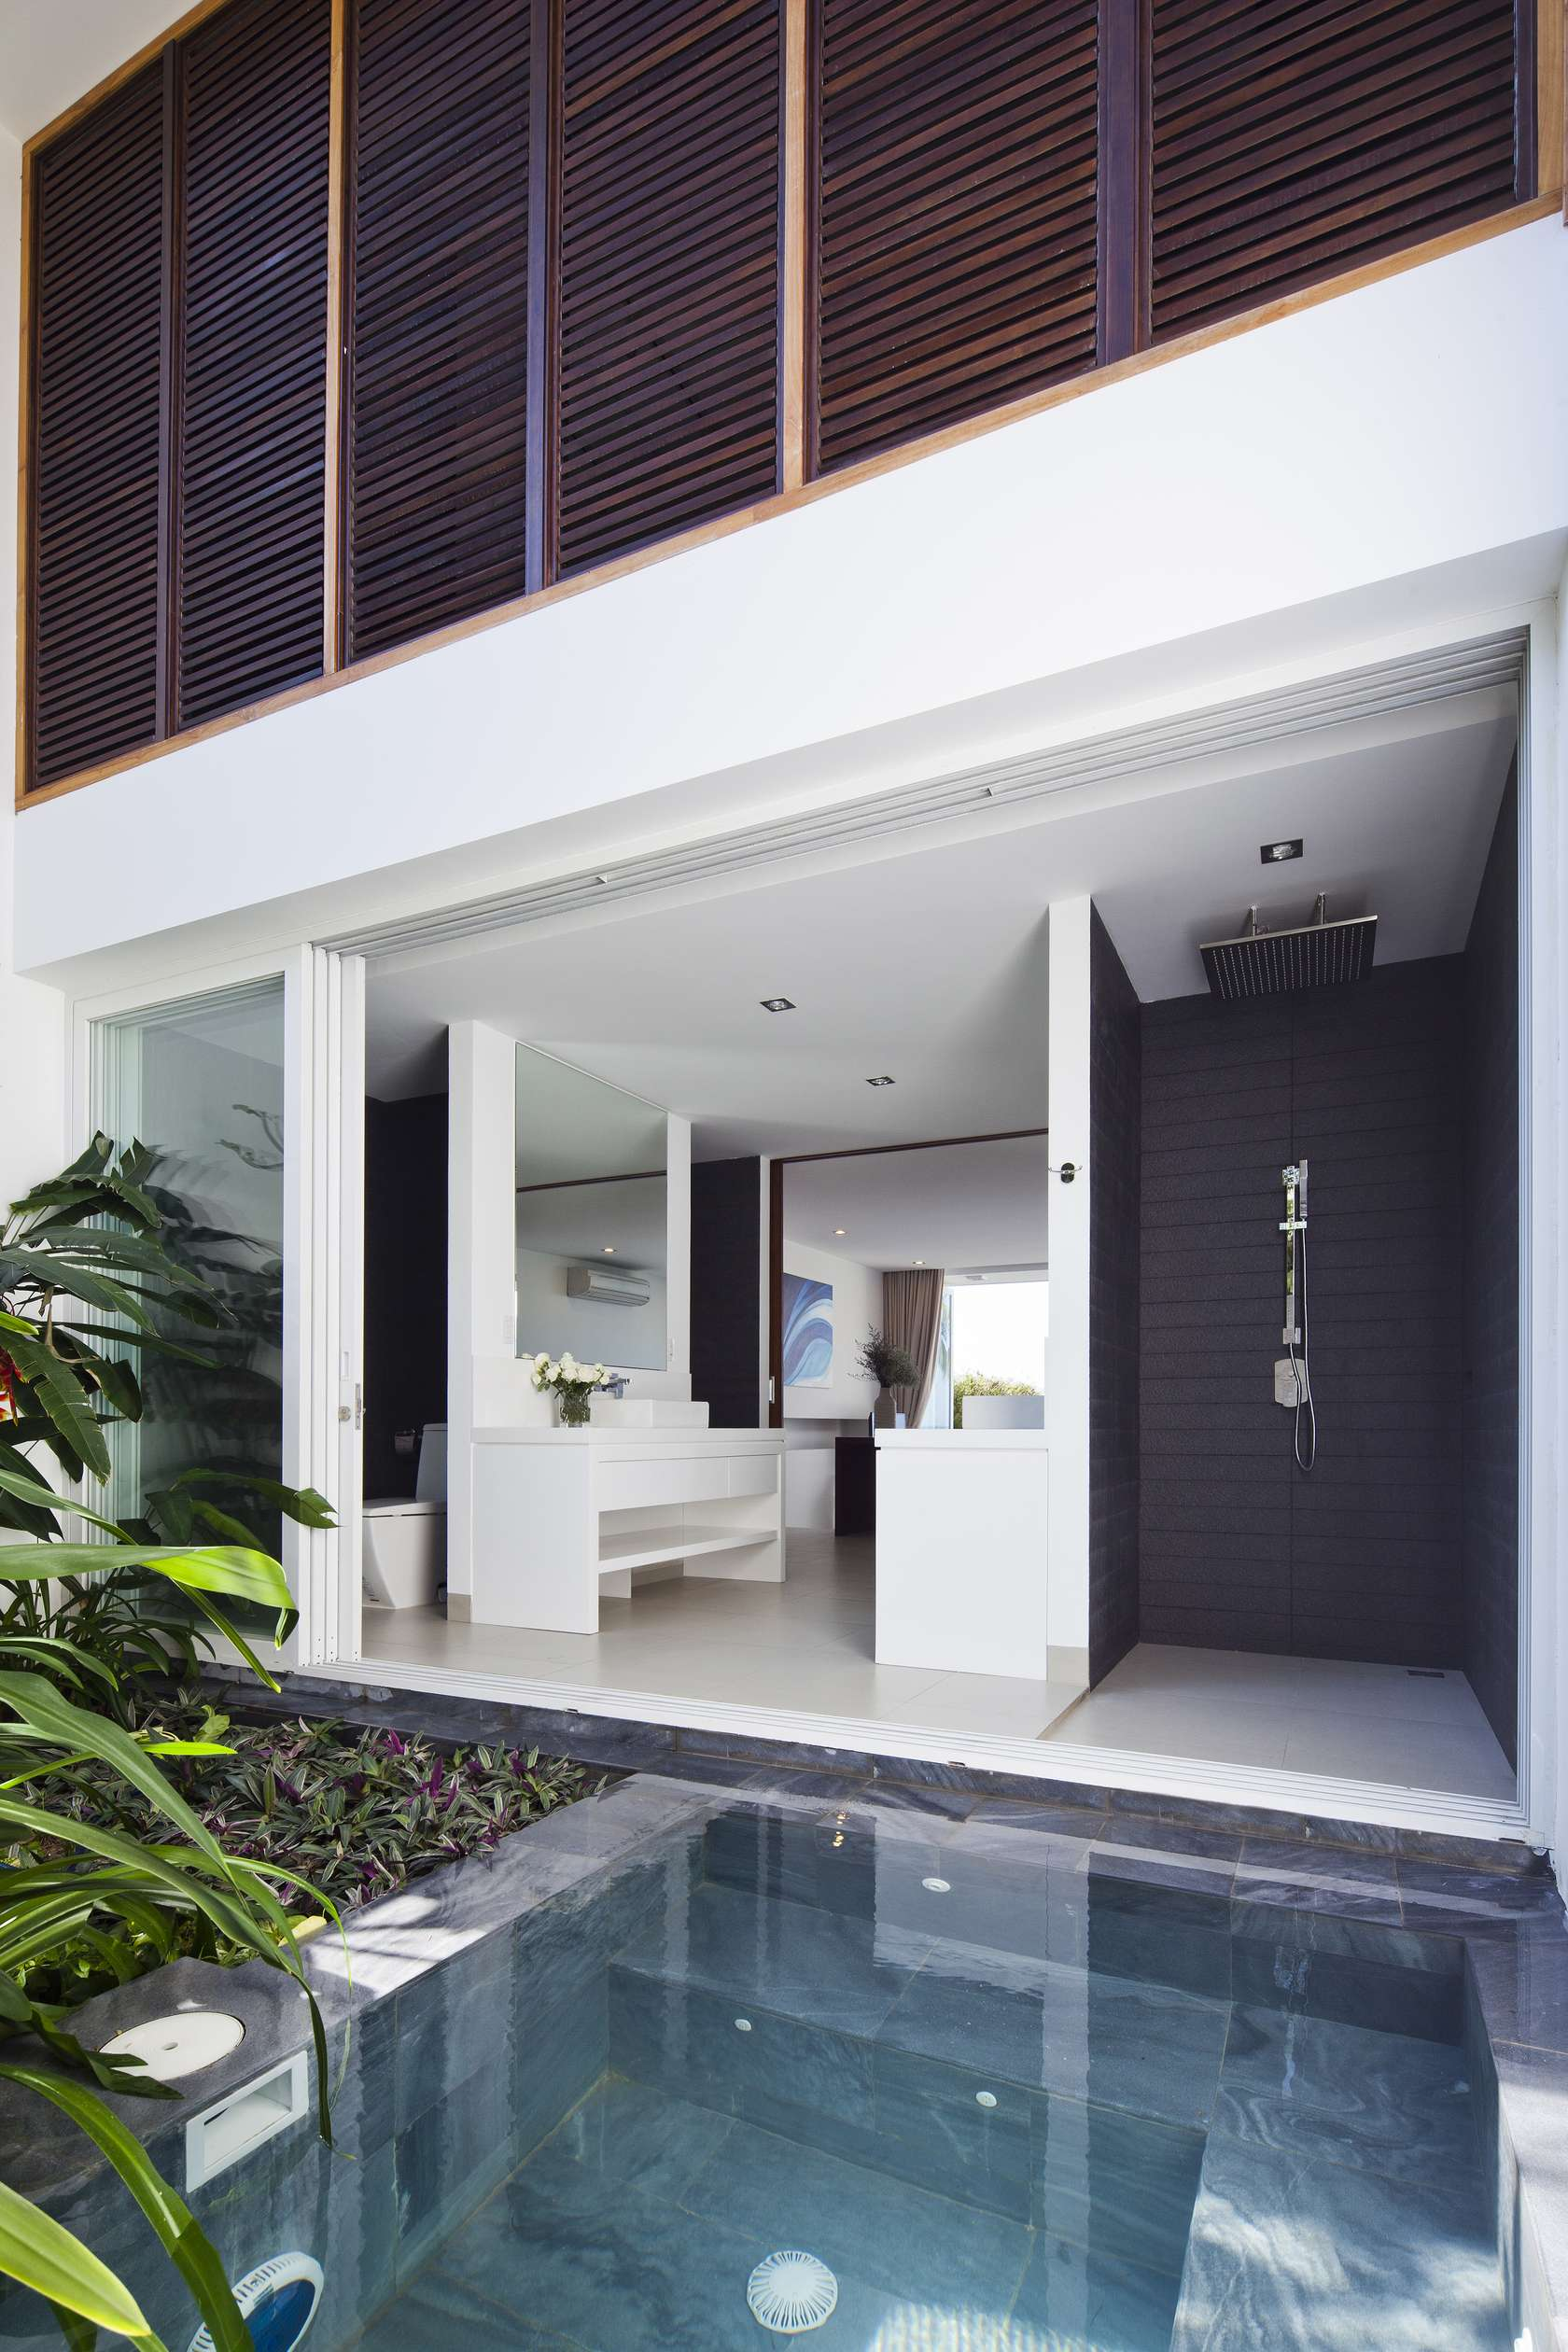 Oceanique-Villas-Vietnam-outdoor-shower